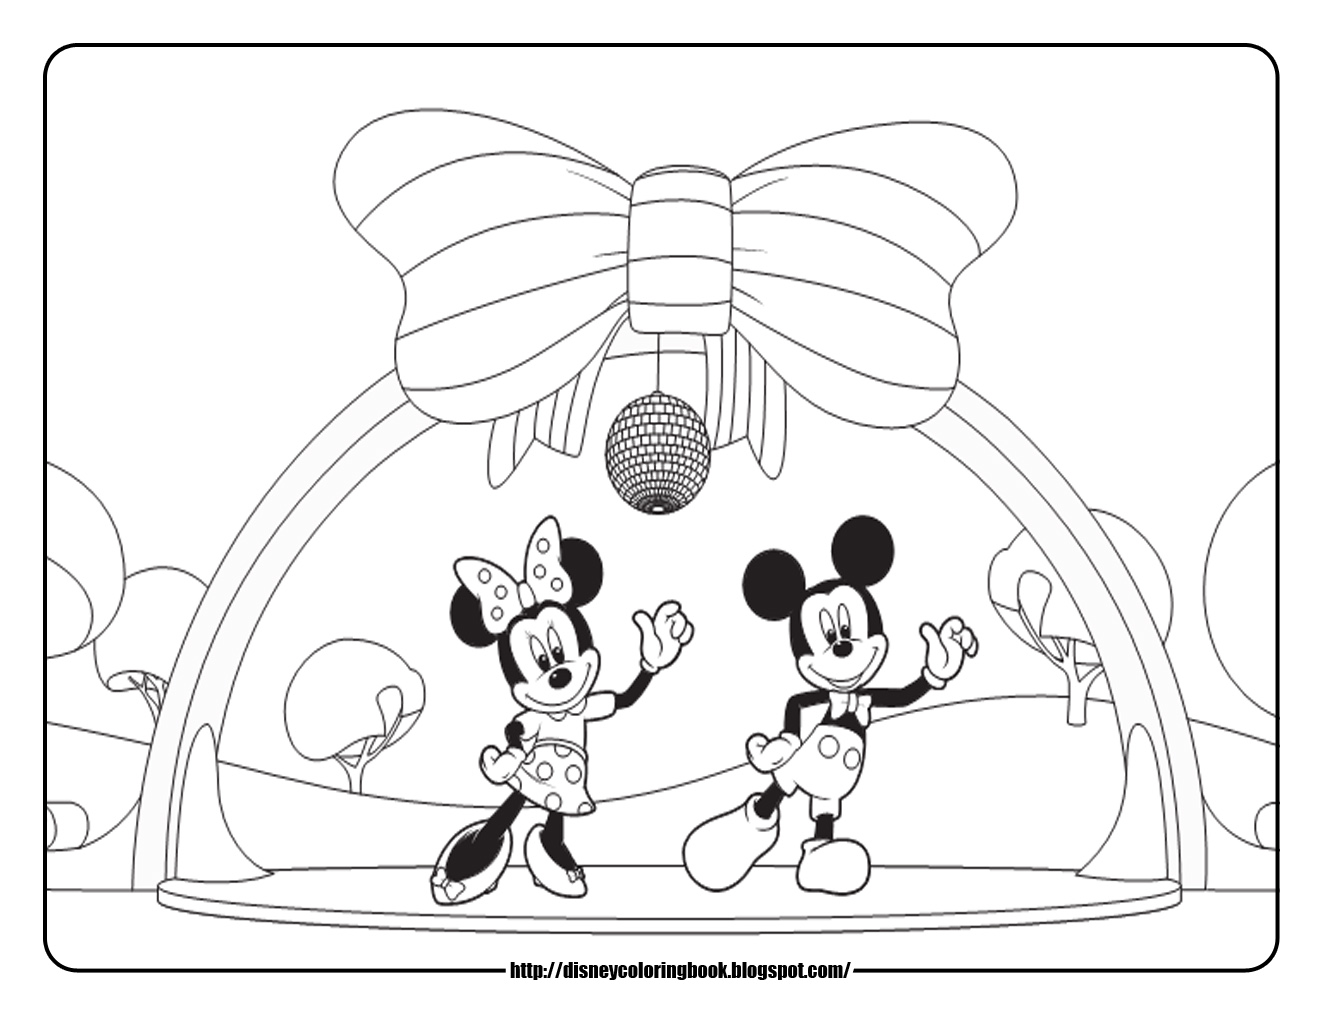 Disney Coloring Pages And Sheets For Kids Mickey Mouse Mickey Mouse Clubhouse Color Pages